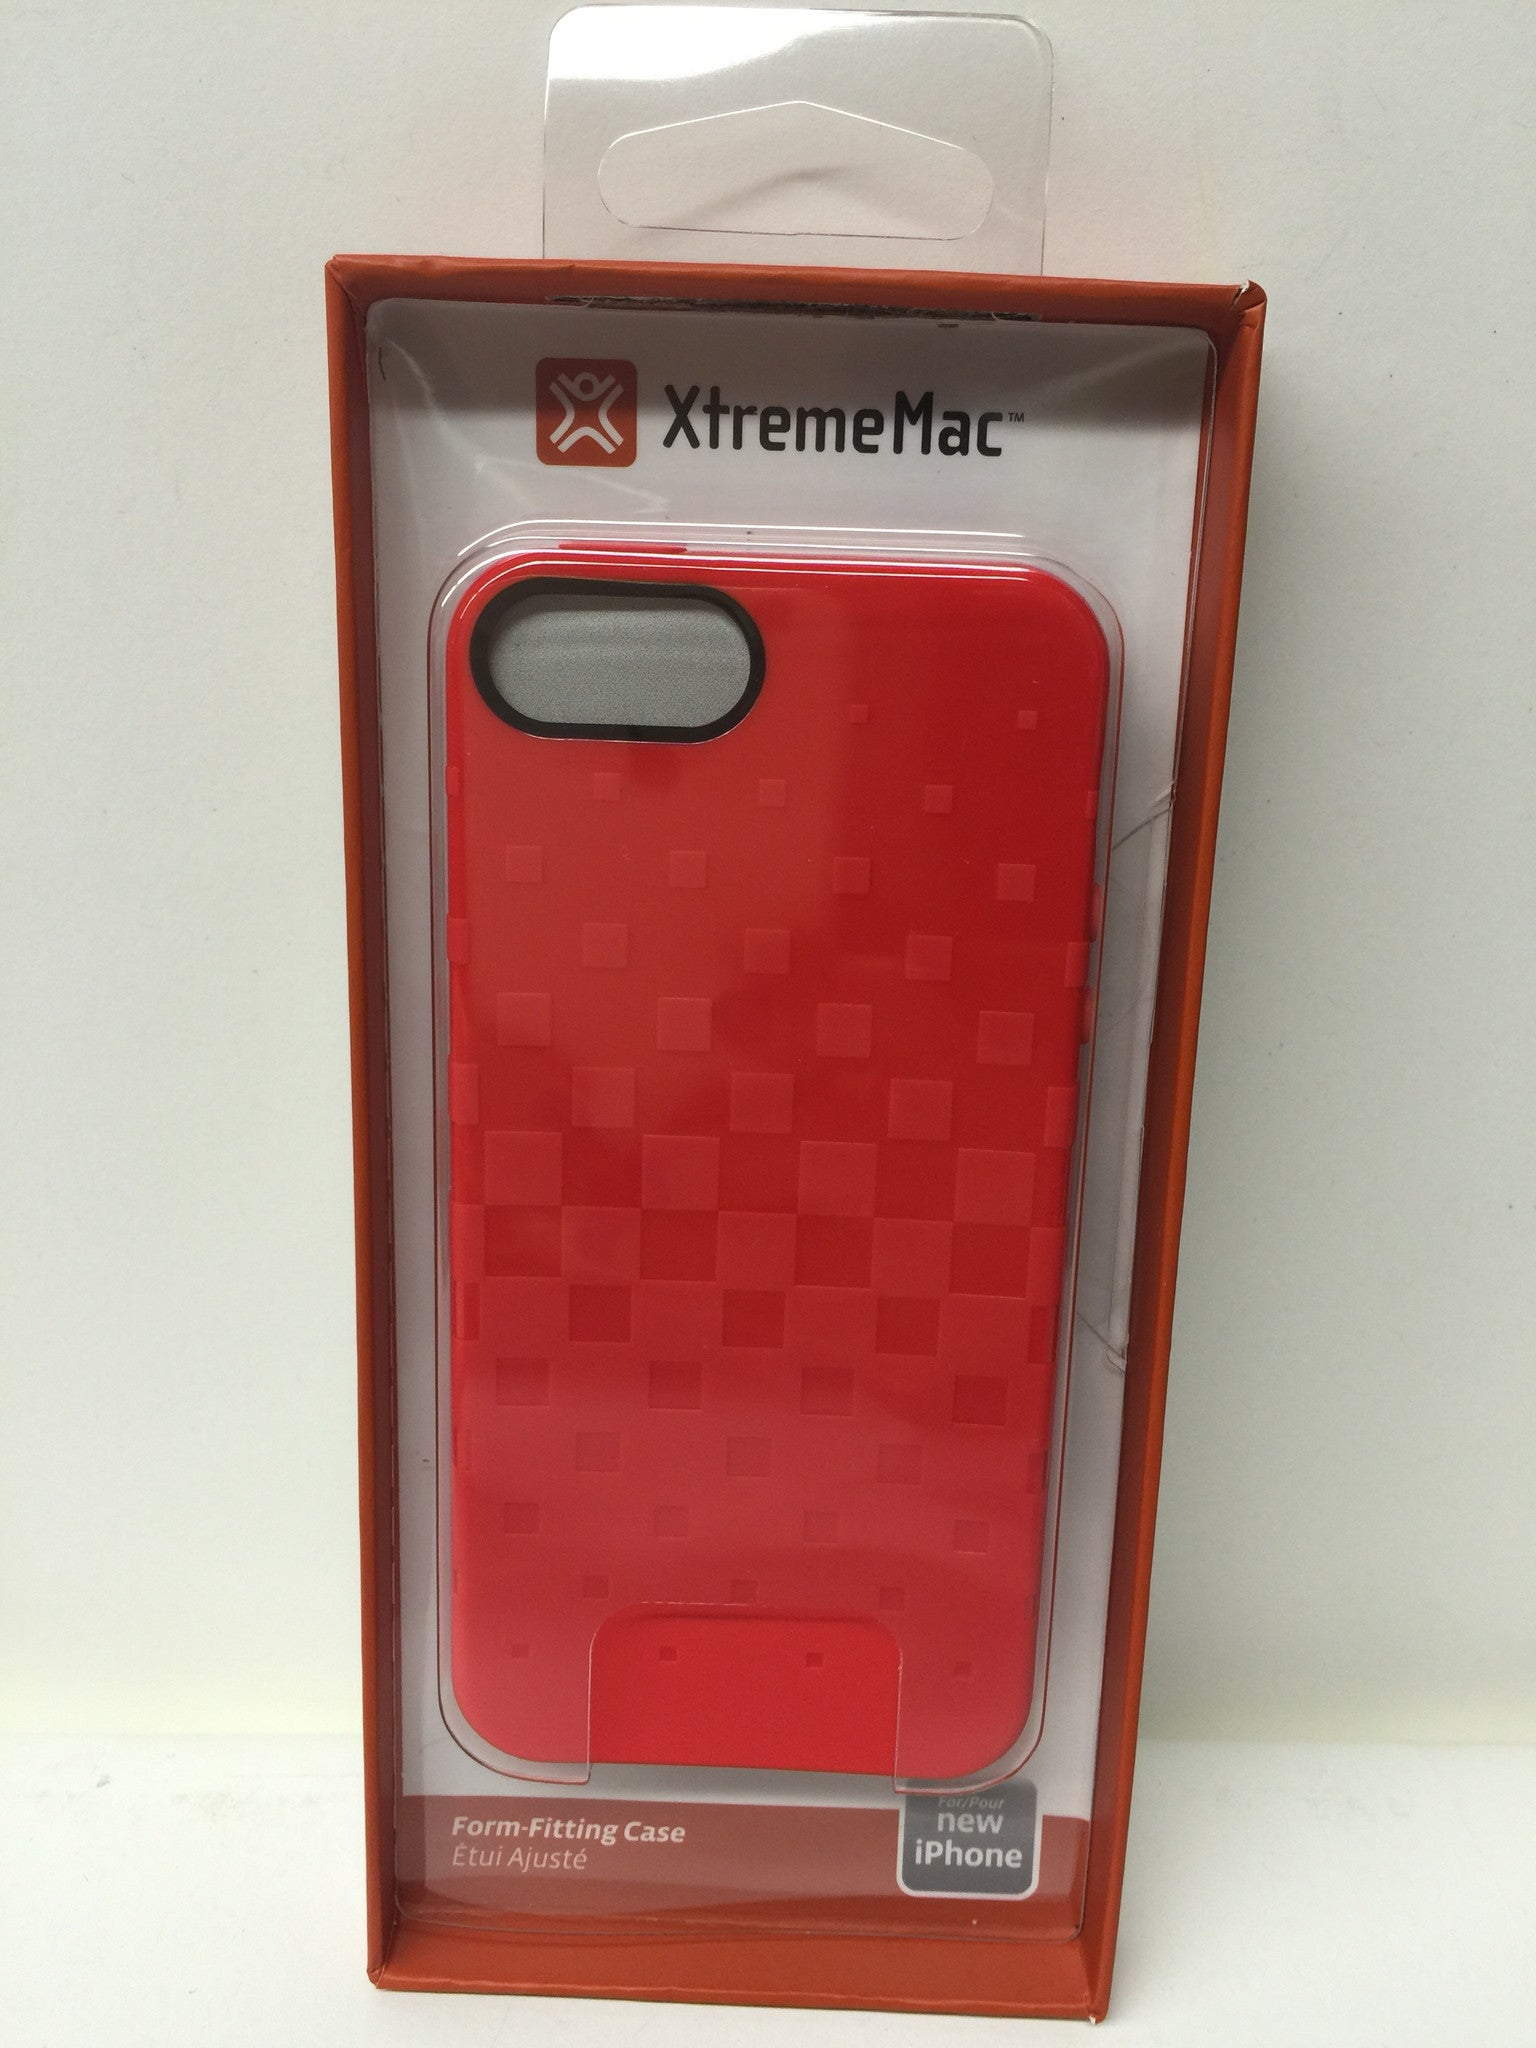 XtremeMac IPP-TWN-73 Tuffwrap Case for iPhone 5/5s - Cherry Bomb Red - LiquidationOutlet.ca